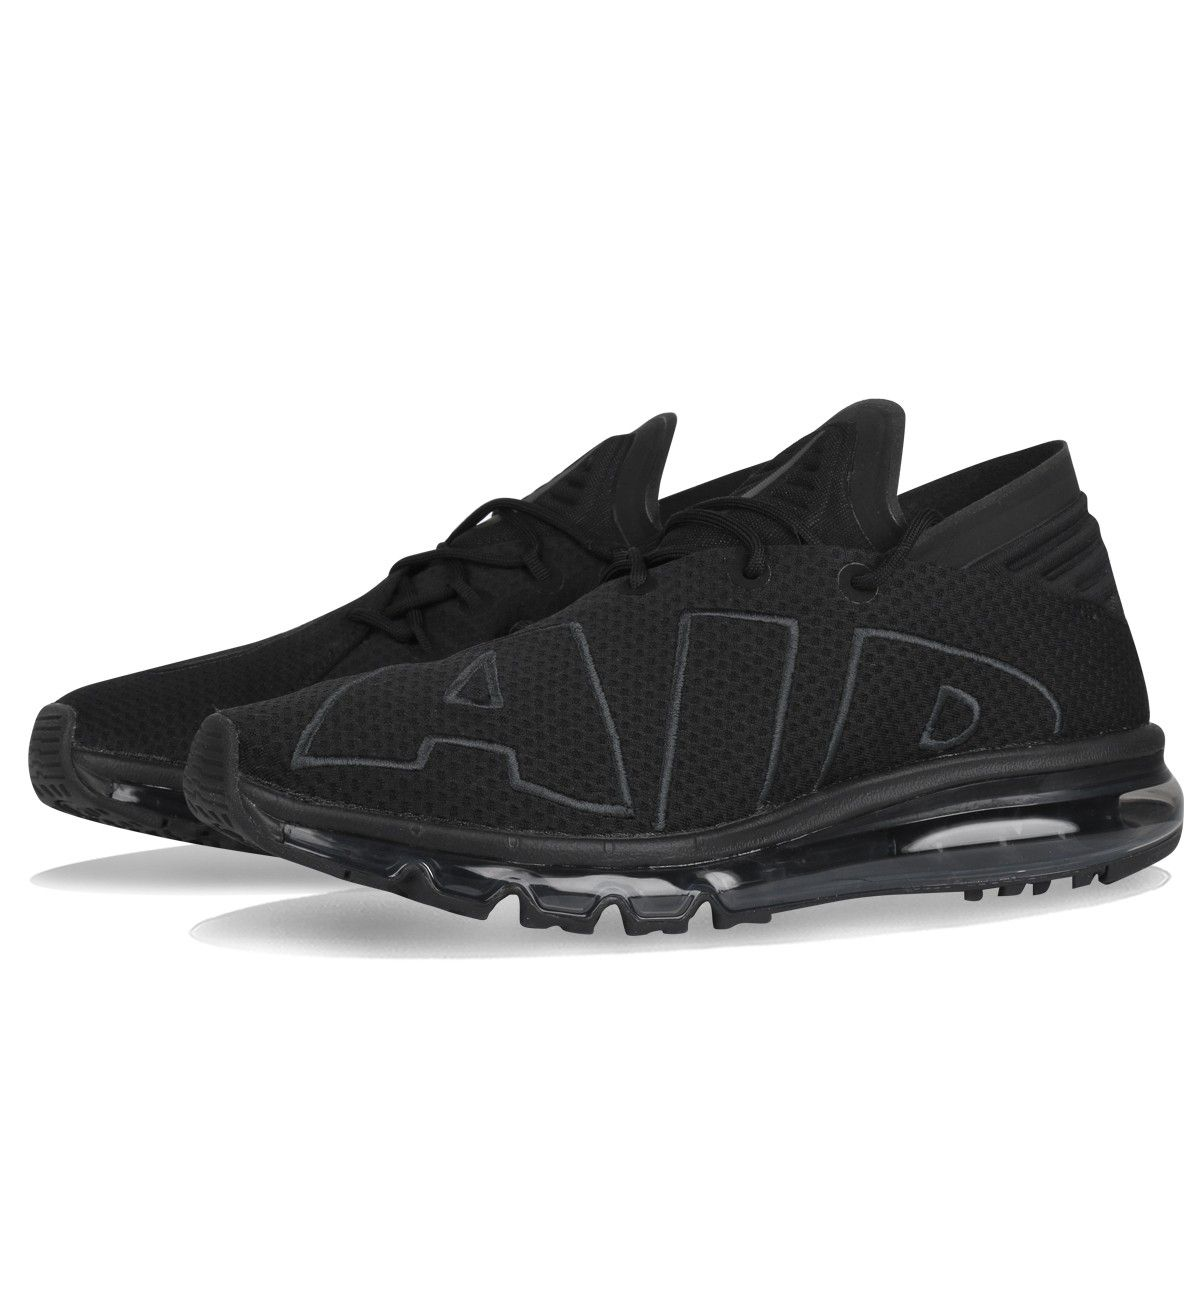 huge selection of 8a0ca 50991 Nike Air Max Flair UpTempo Triple Black 942236 002 Chaussures Nike Running  Pour HOmme-1708253348 - Les Nike Sneaker Officiel site En France